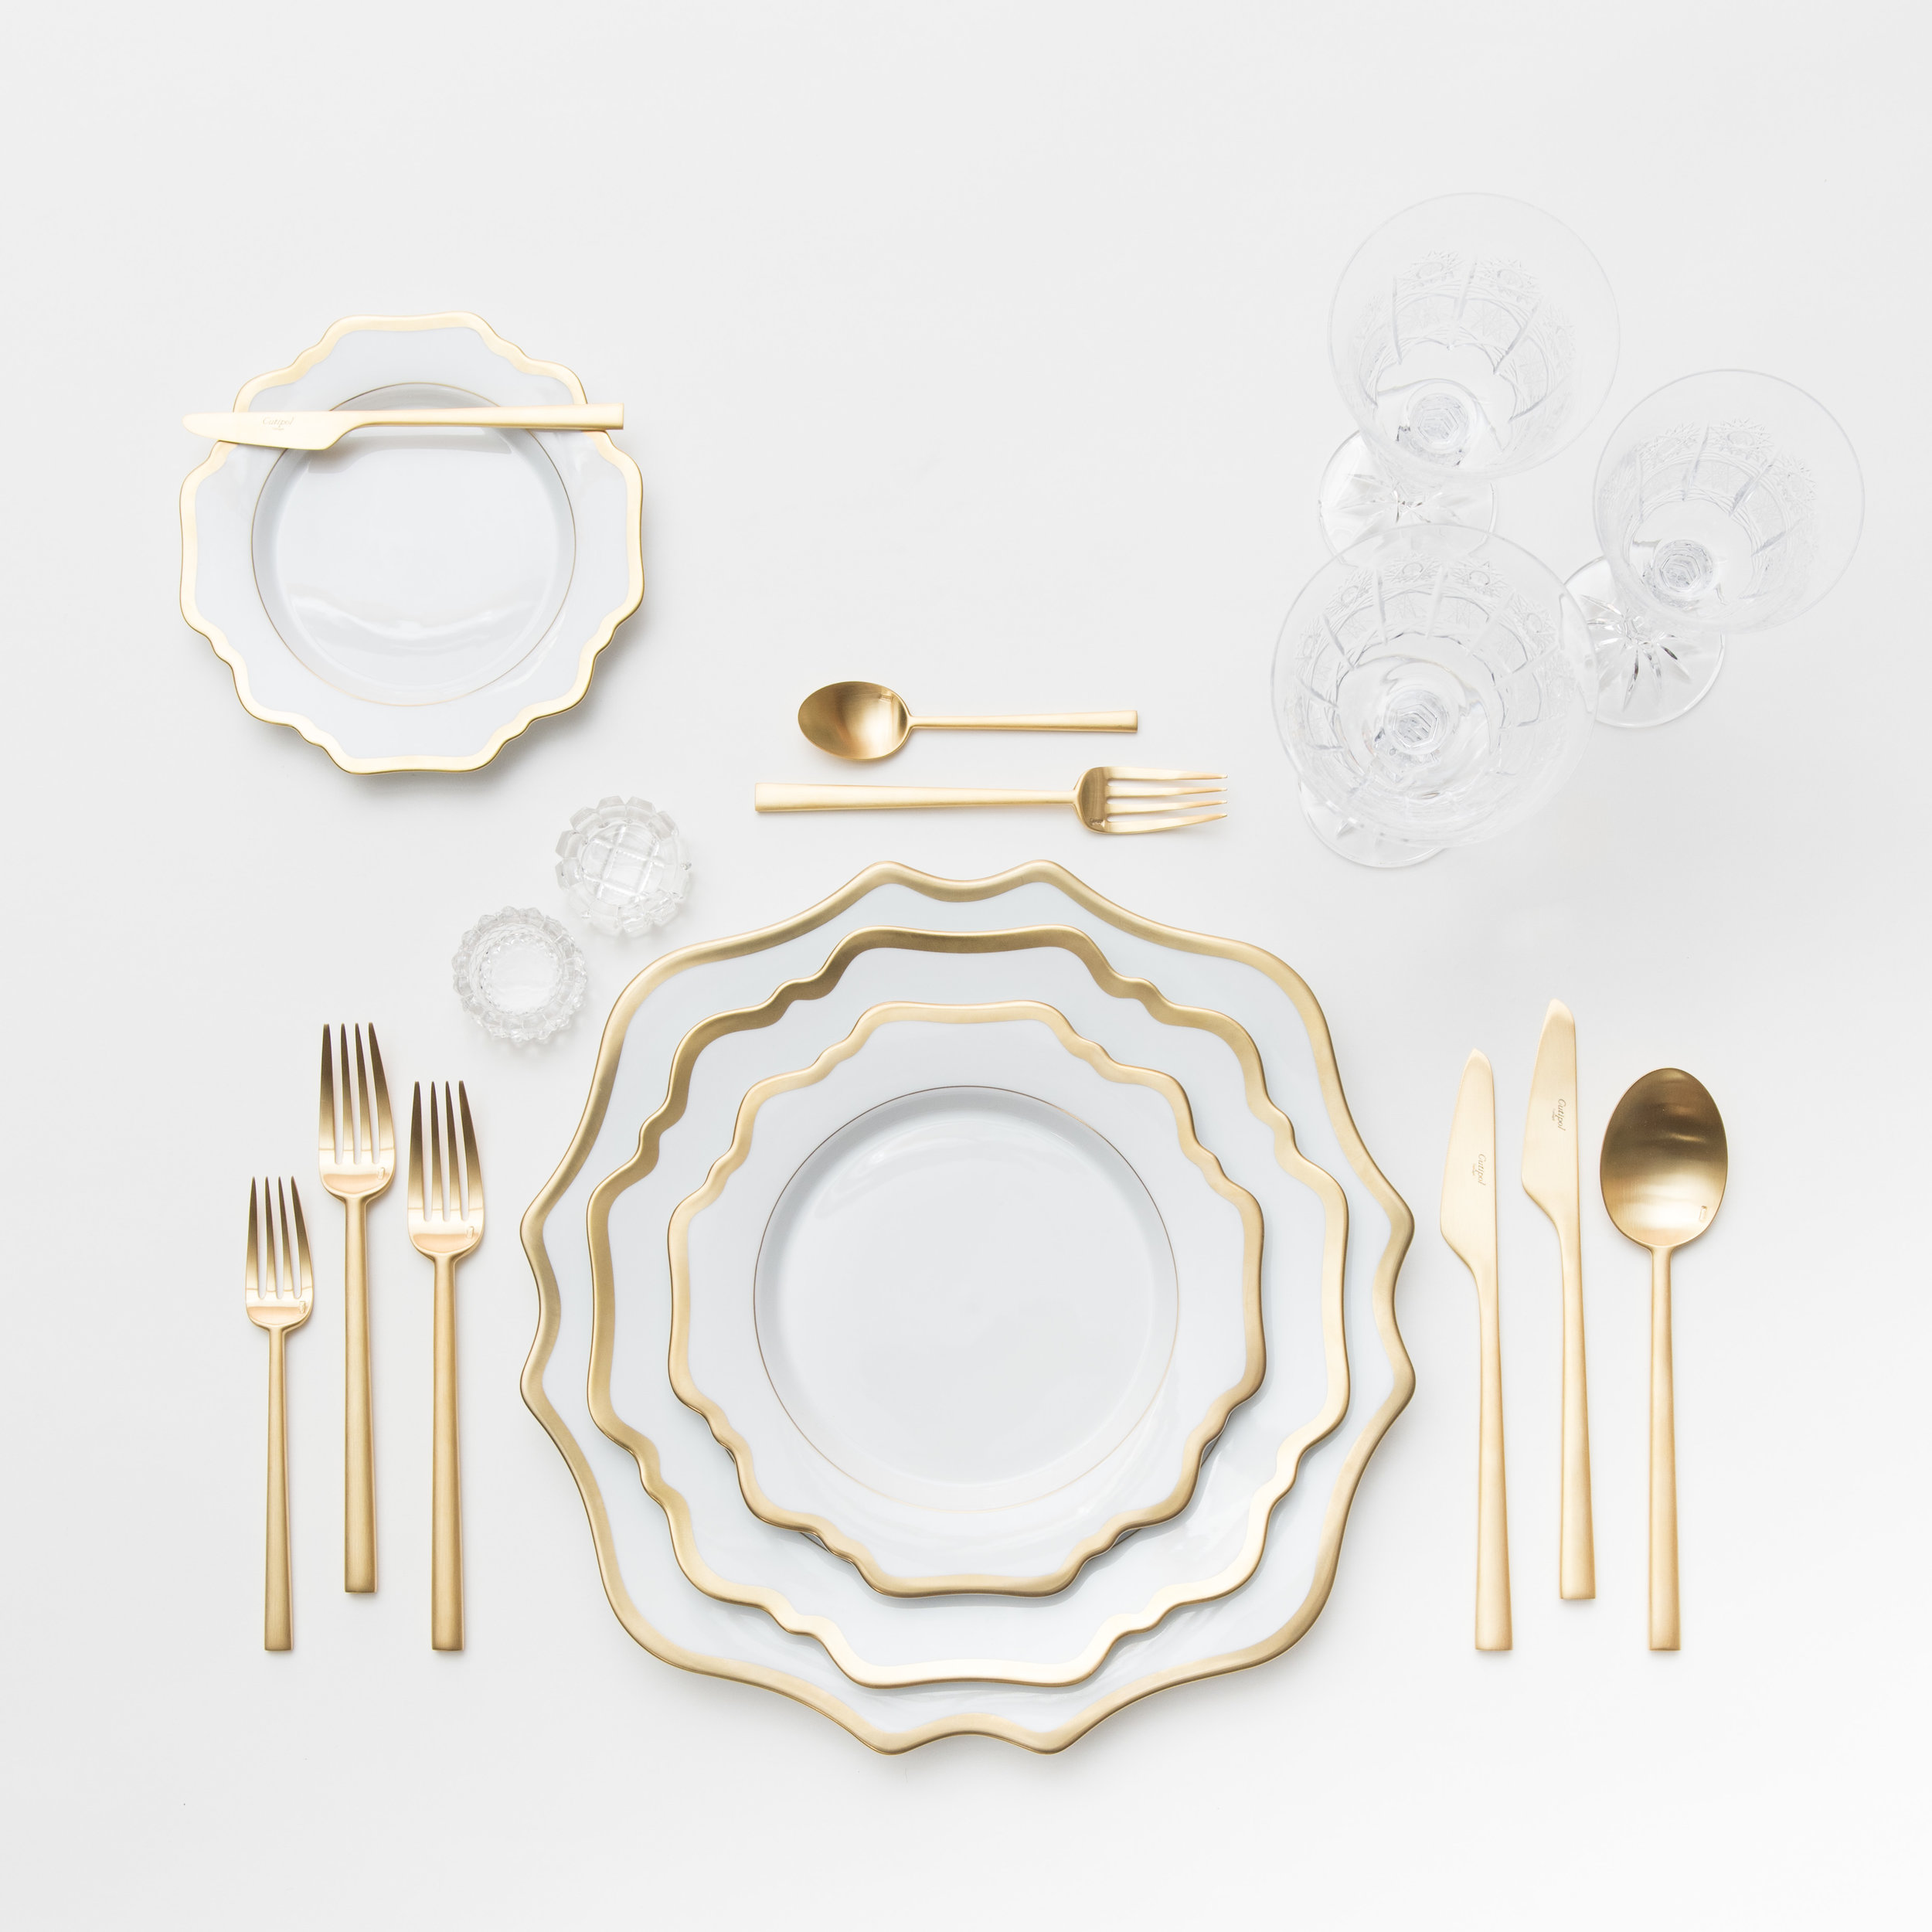 RENT: Anna Weatherley Chargers/Dinnerware in White/Gold + Rondo Flatware in Brushed 24k Gold + Czech Crystal Stemware +Antique Crystal Salt Cellars  SHOP:Anna Weatherley Chargers/Dinnerware in White/Gold + Rondo Flatware in Brushed 24k Gold